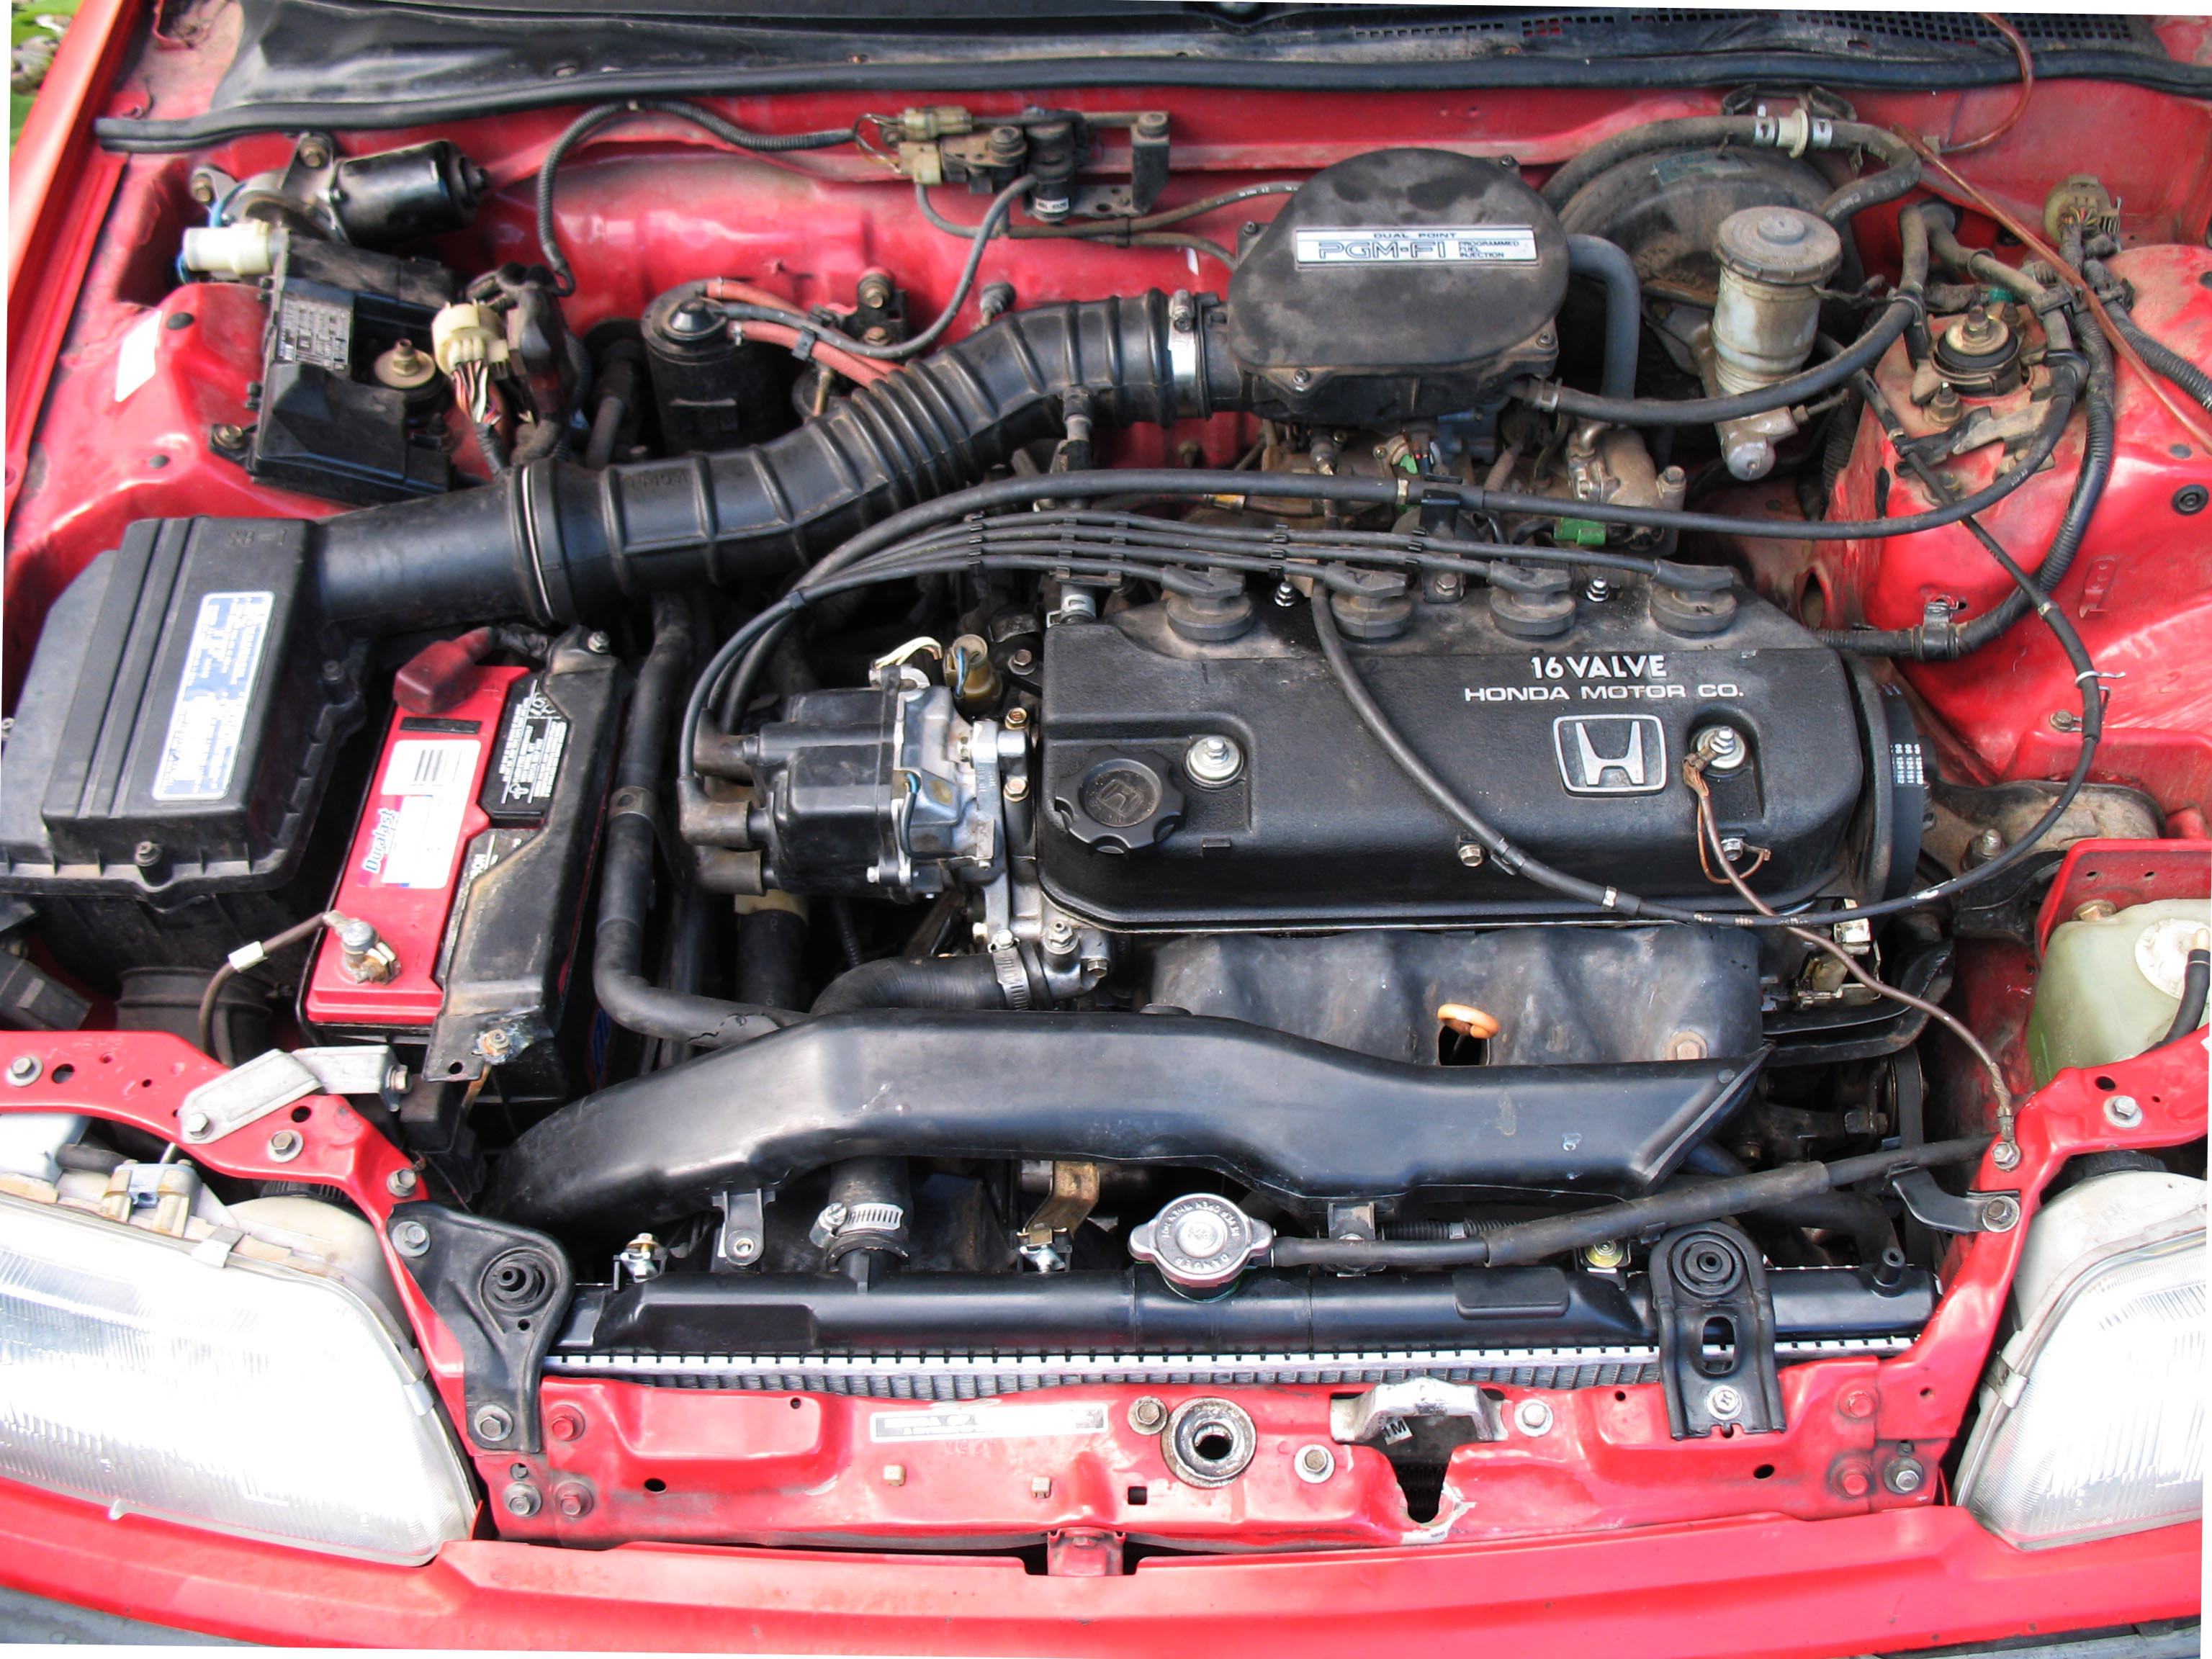 hight resolution of head gasket replacement on 91 honda civic